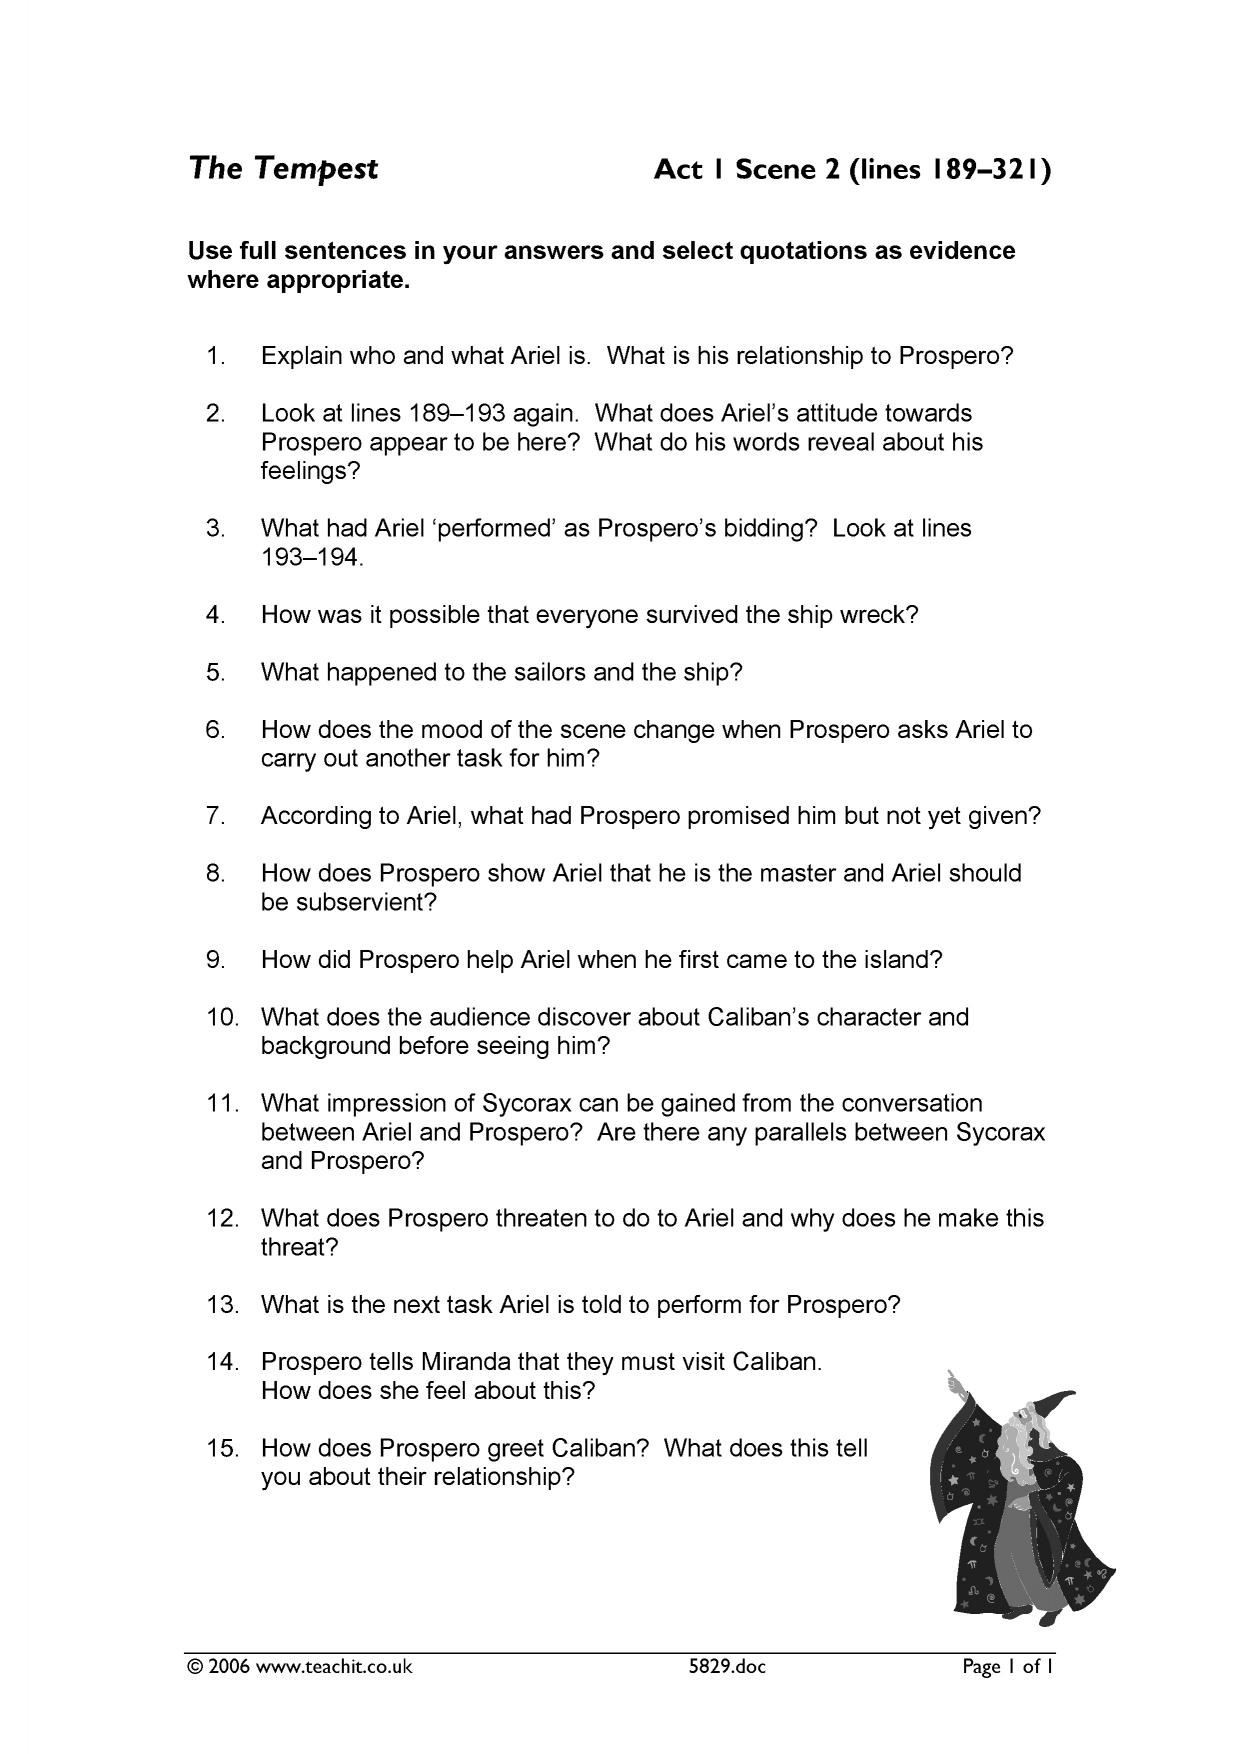 Act 1 Scene 2 Comprehension Questions